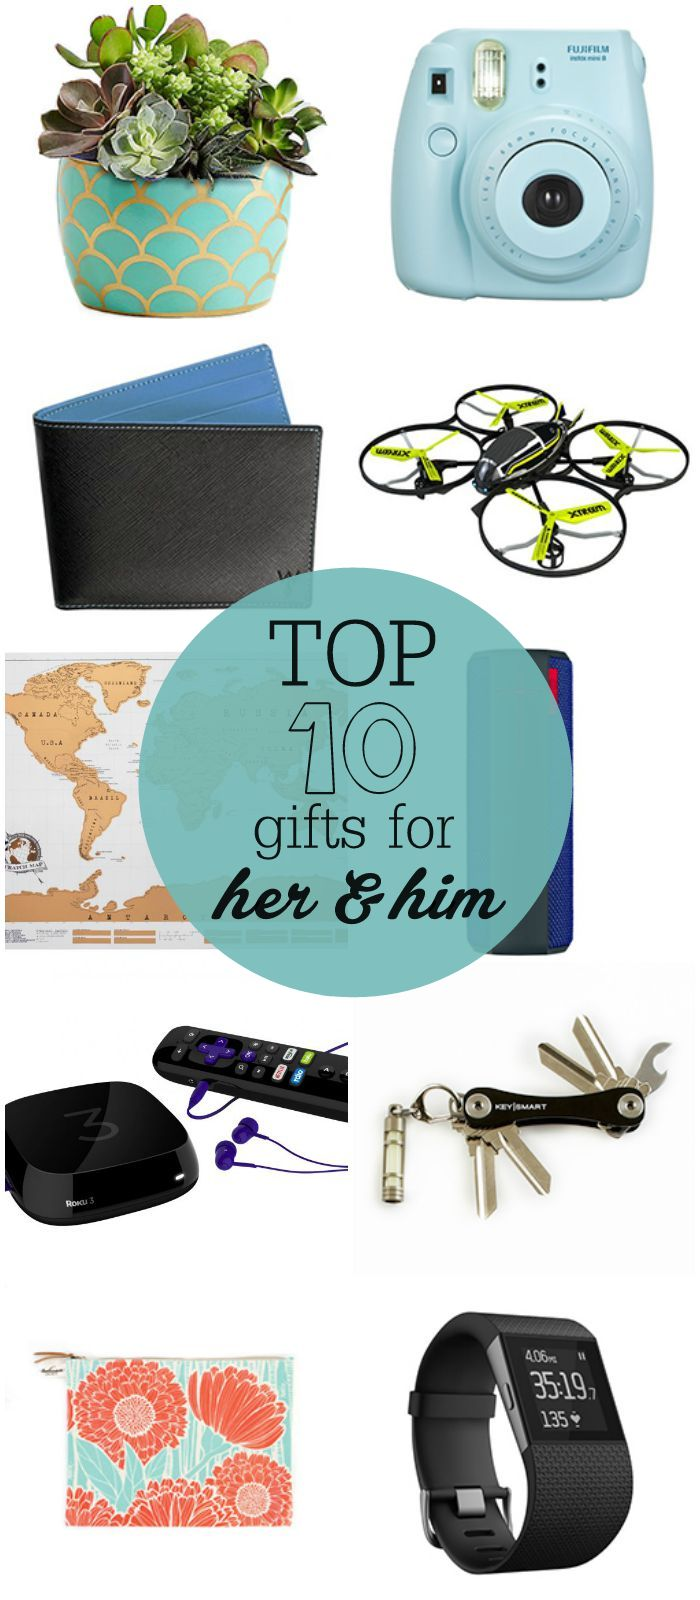 TOP 10 Gifts for Her and Him - perfect for birthdays, special days or the holidays!!